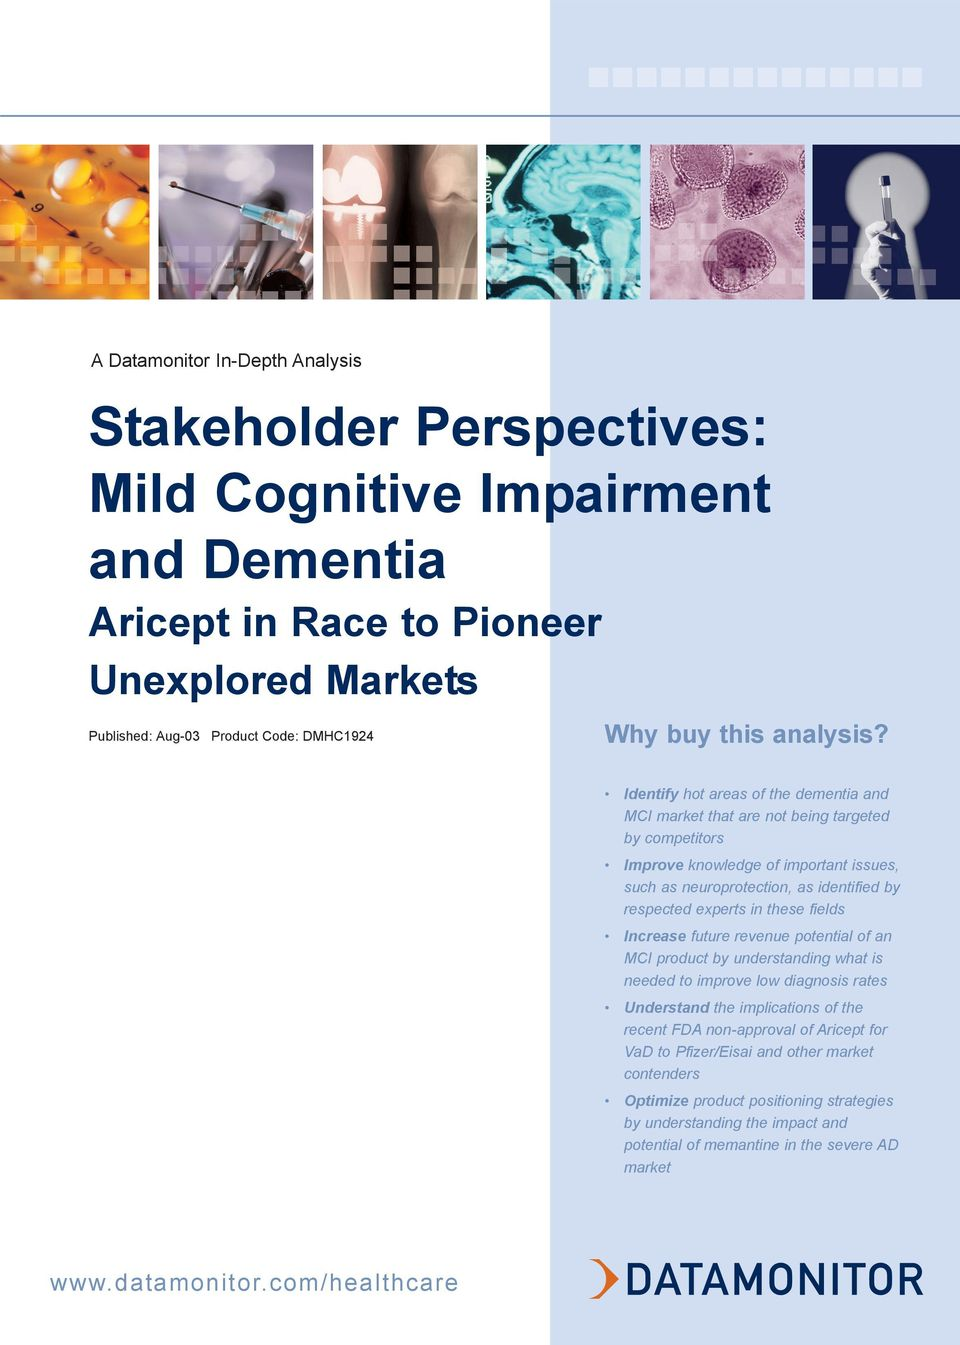 Identify hot areas of the dementia and MCI market that are not being targeted by competitors Improve knowledge of important issues, such as neuroprotection, as identified by respected experts in